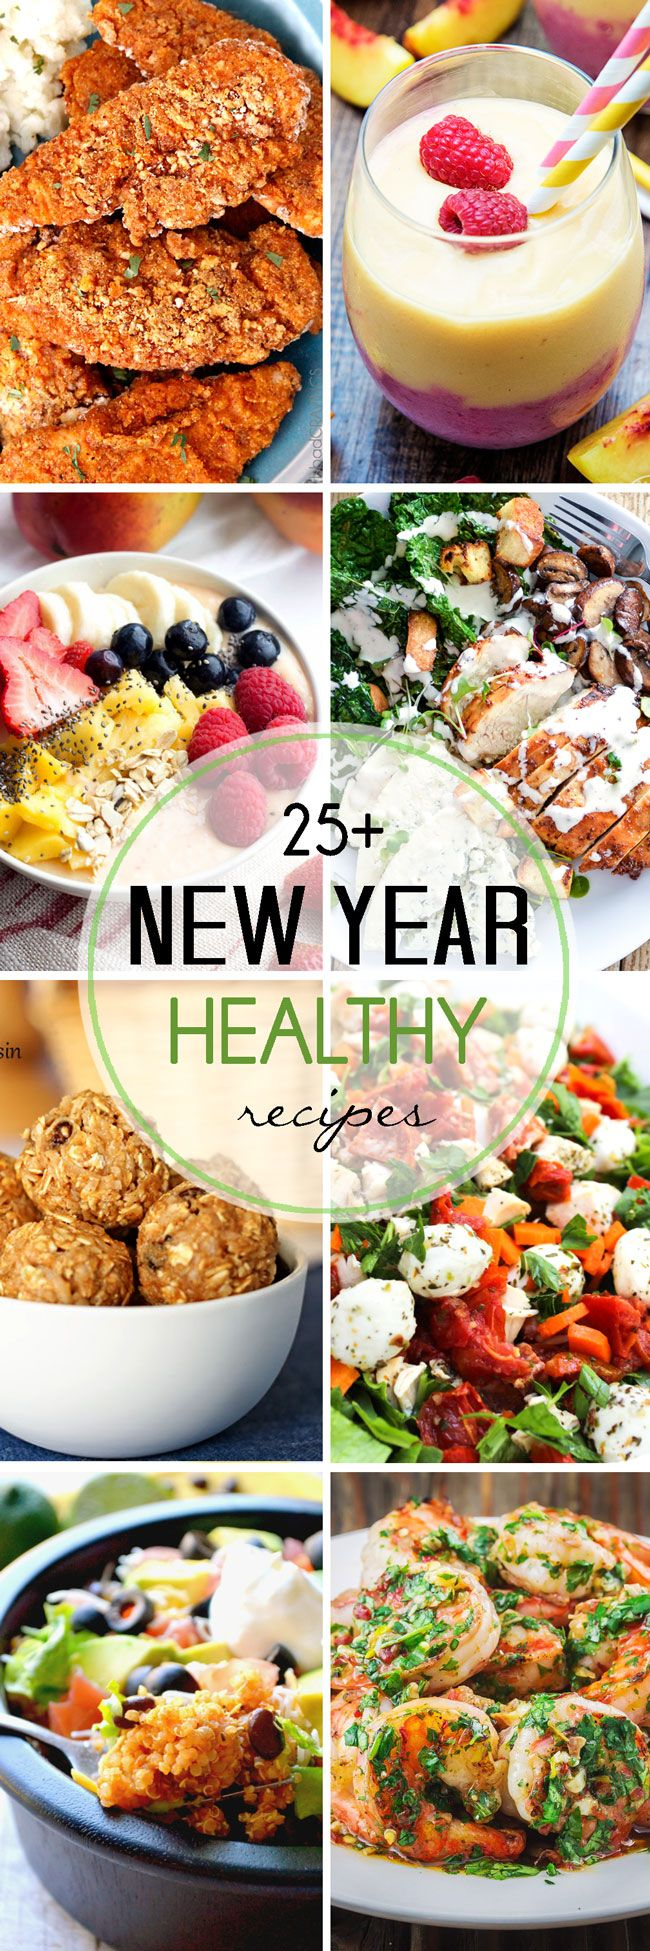 Healthy New Year Recipes - Lmldfood